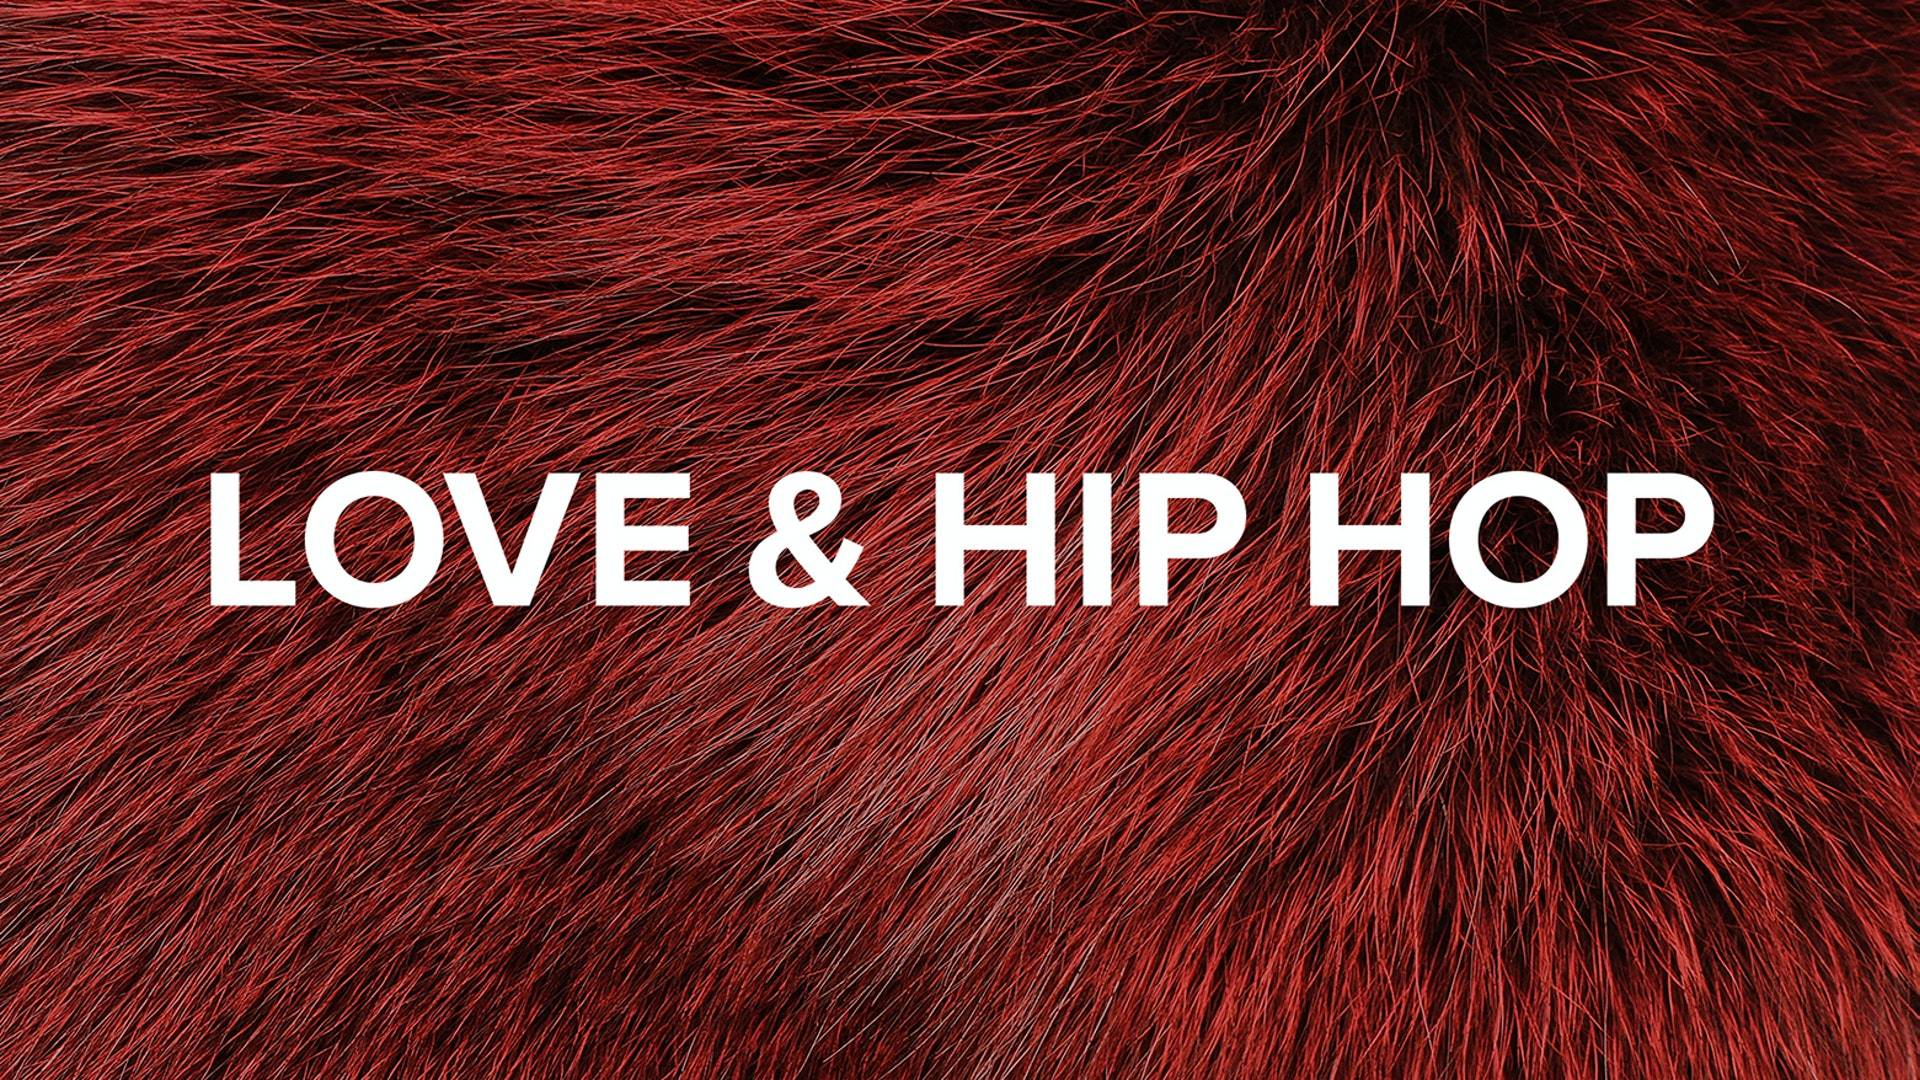 Watch VH1's Love And Hip Hop Channel On Pluto TV